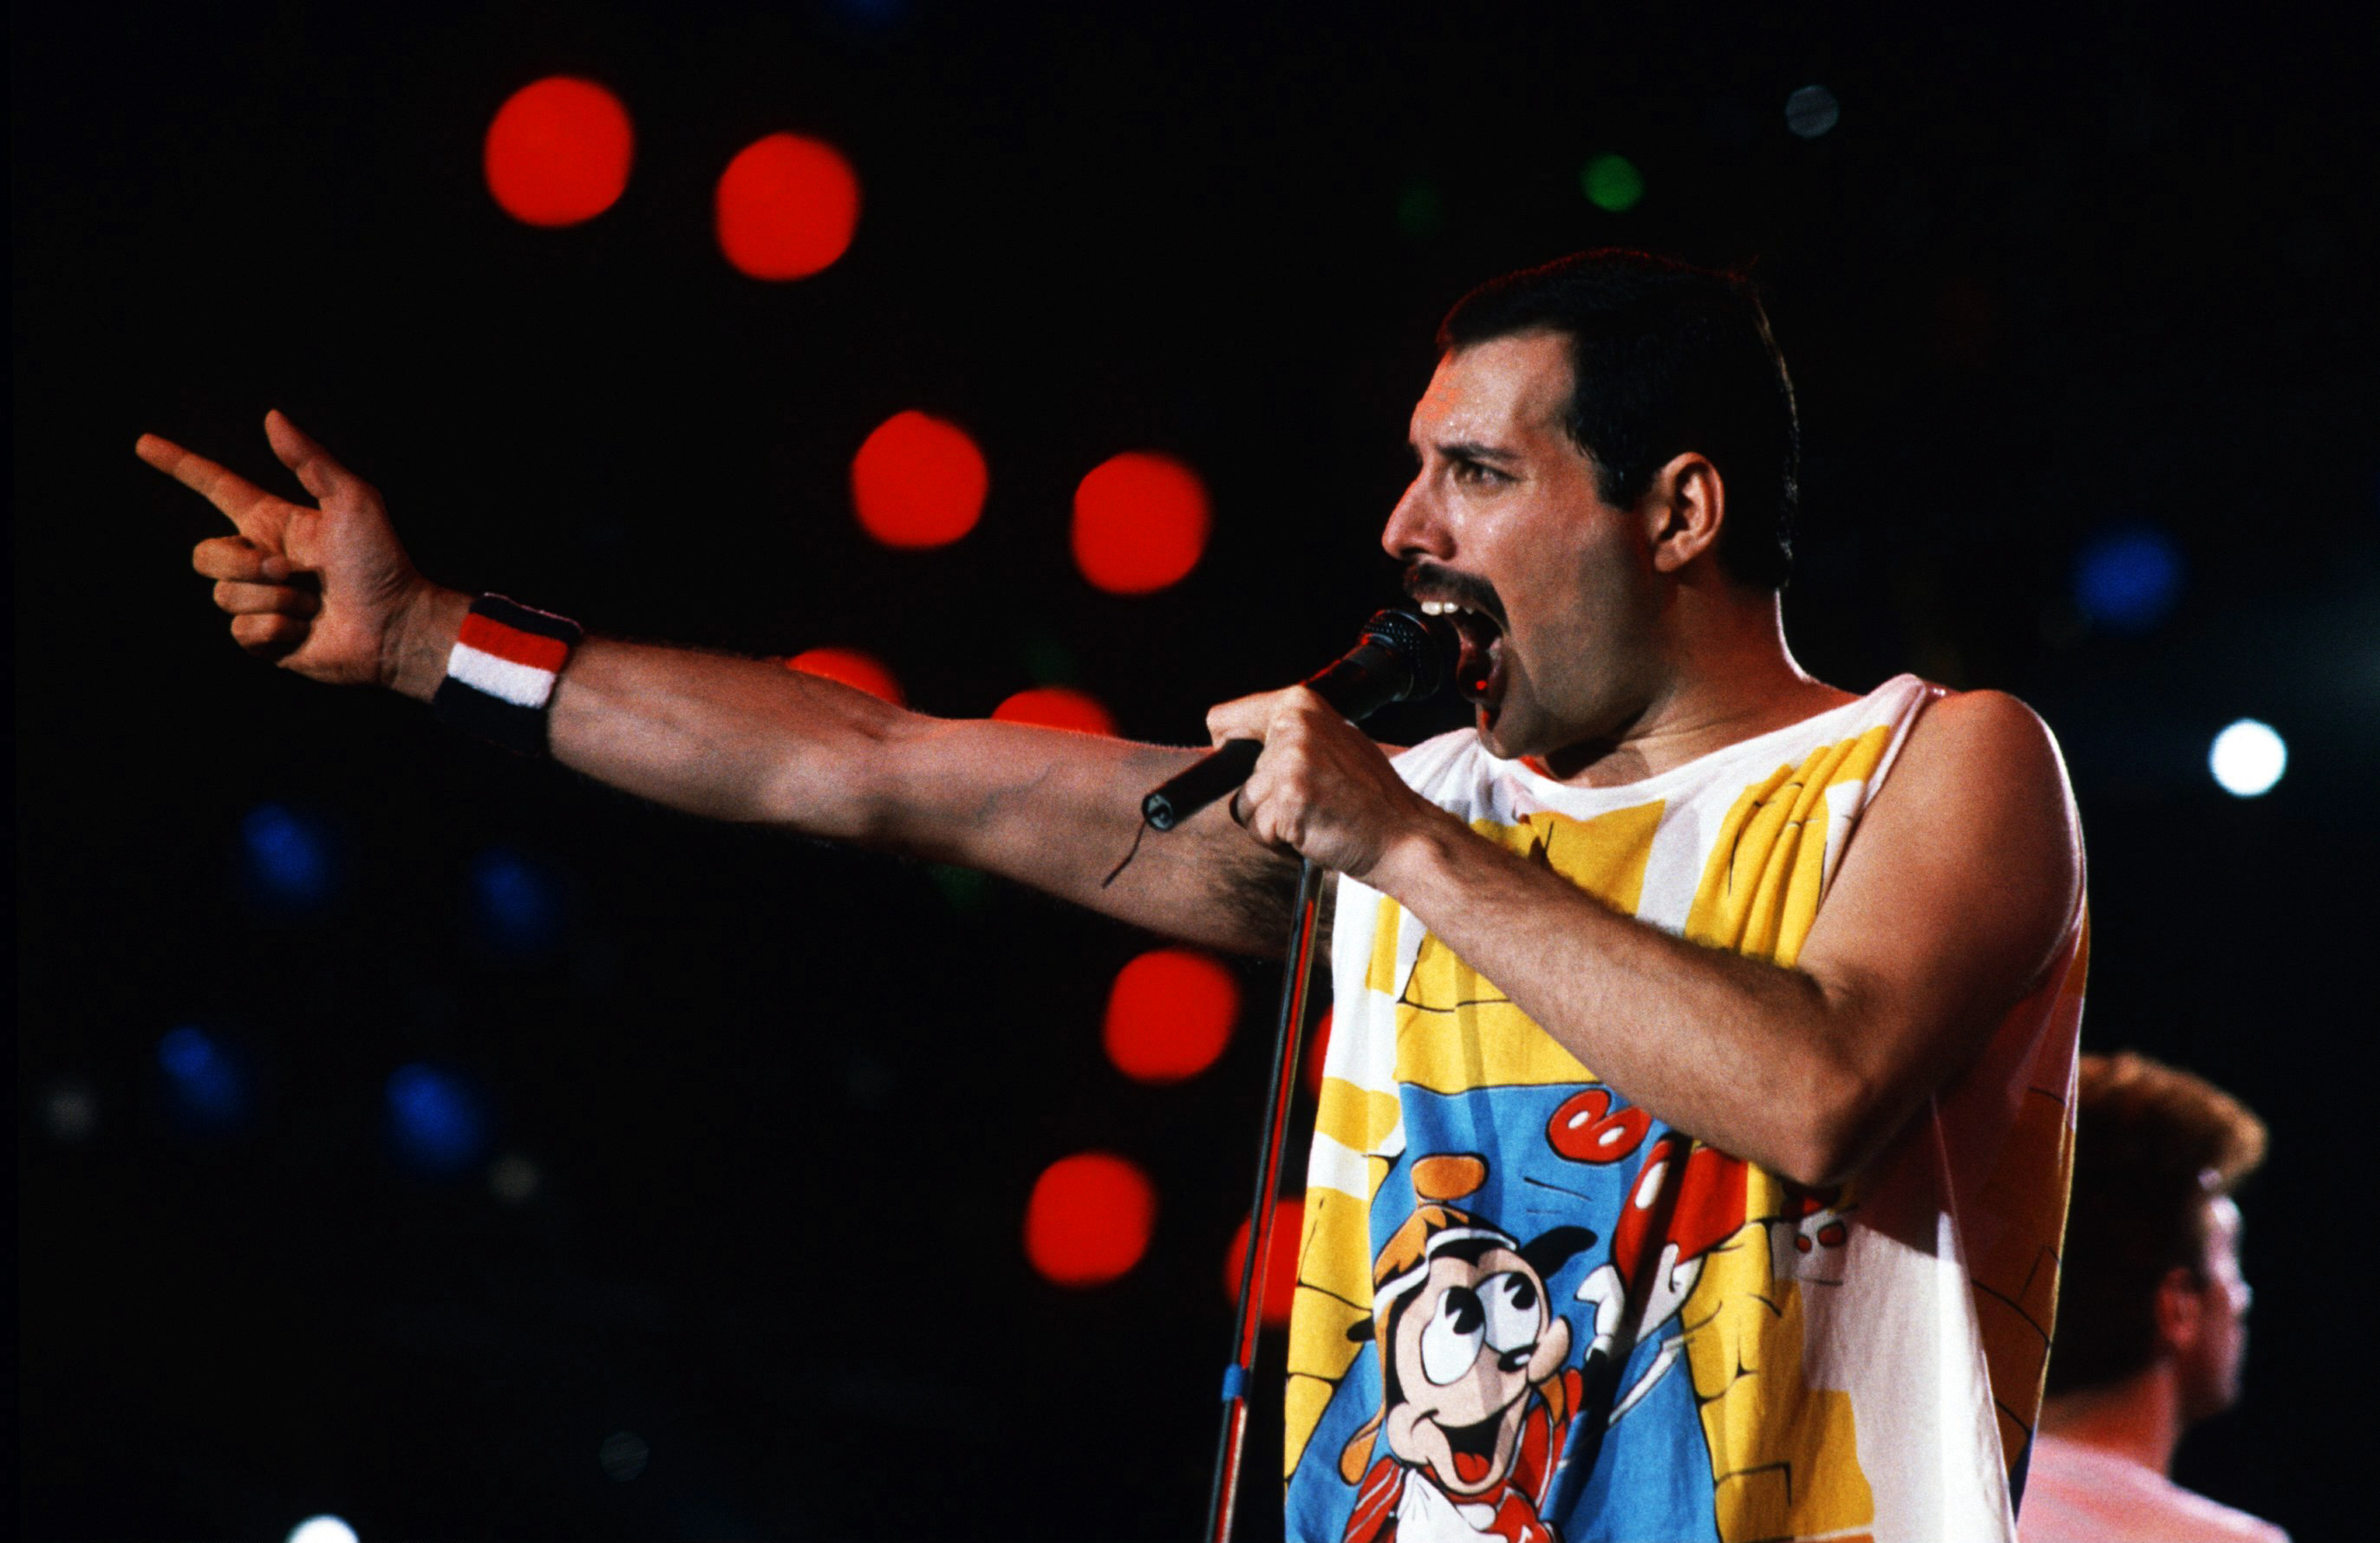 1242x2688 Freddie Mercury Singer Performance Iphone Xs Max Wallpaper Hd Music 4k Wallpapers Images Photos And Background Wallpapers Den